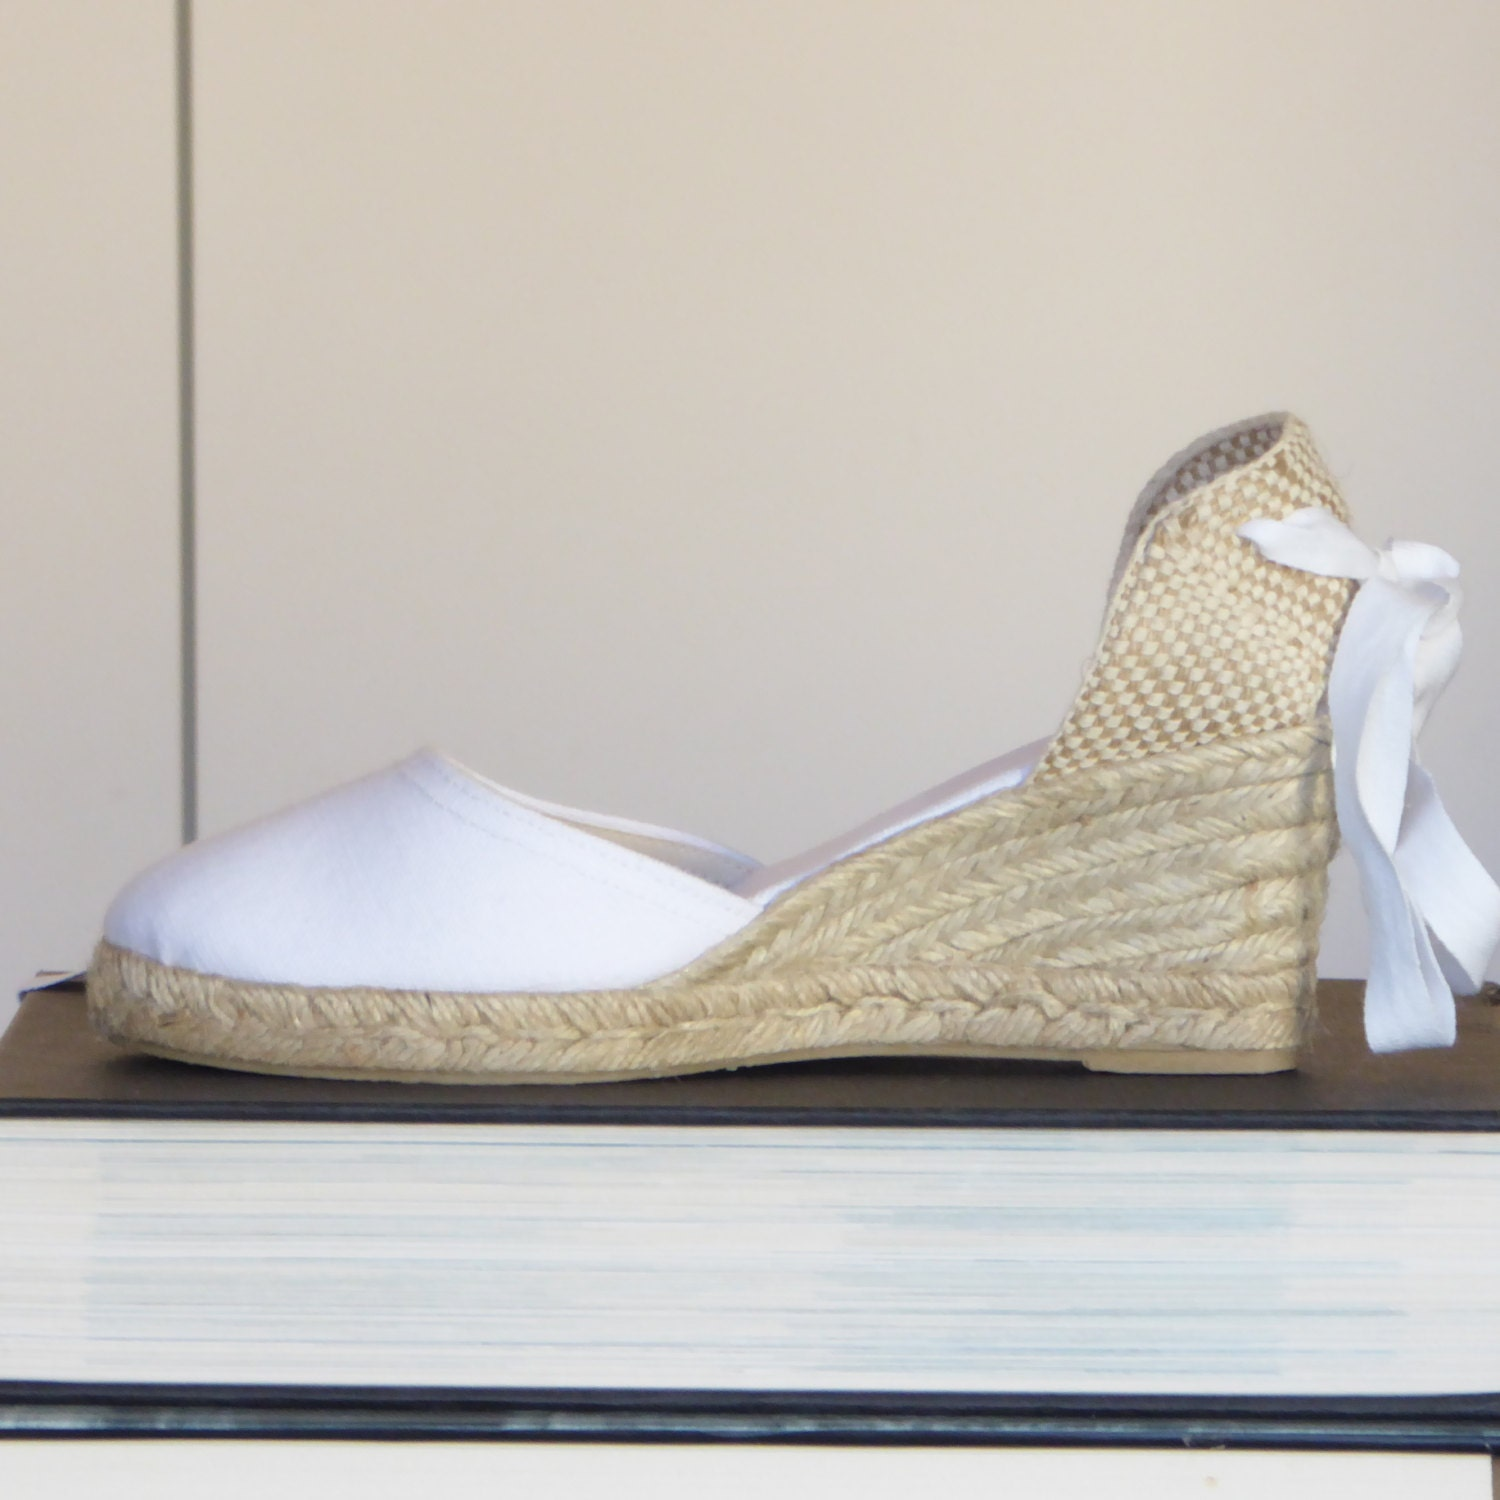 5cf17b293 Lace Up Espadrille Wedge Pumps - BRIDES COLLECTION- made in Spain -  www.mumicospain.com